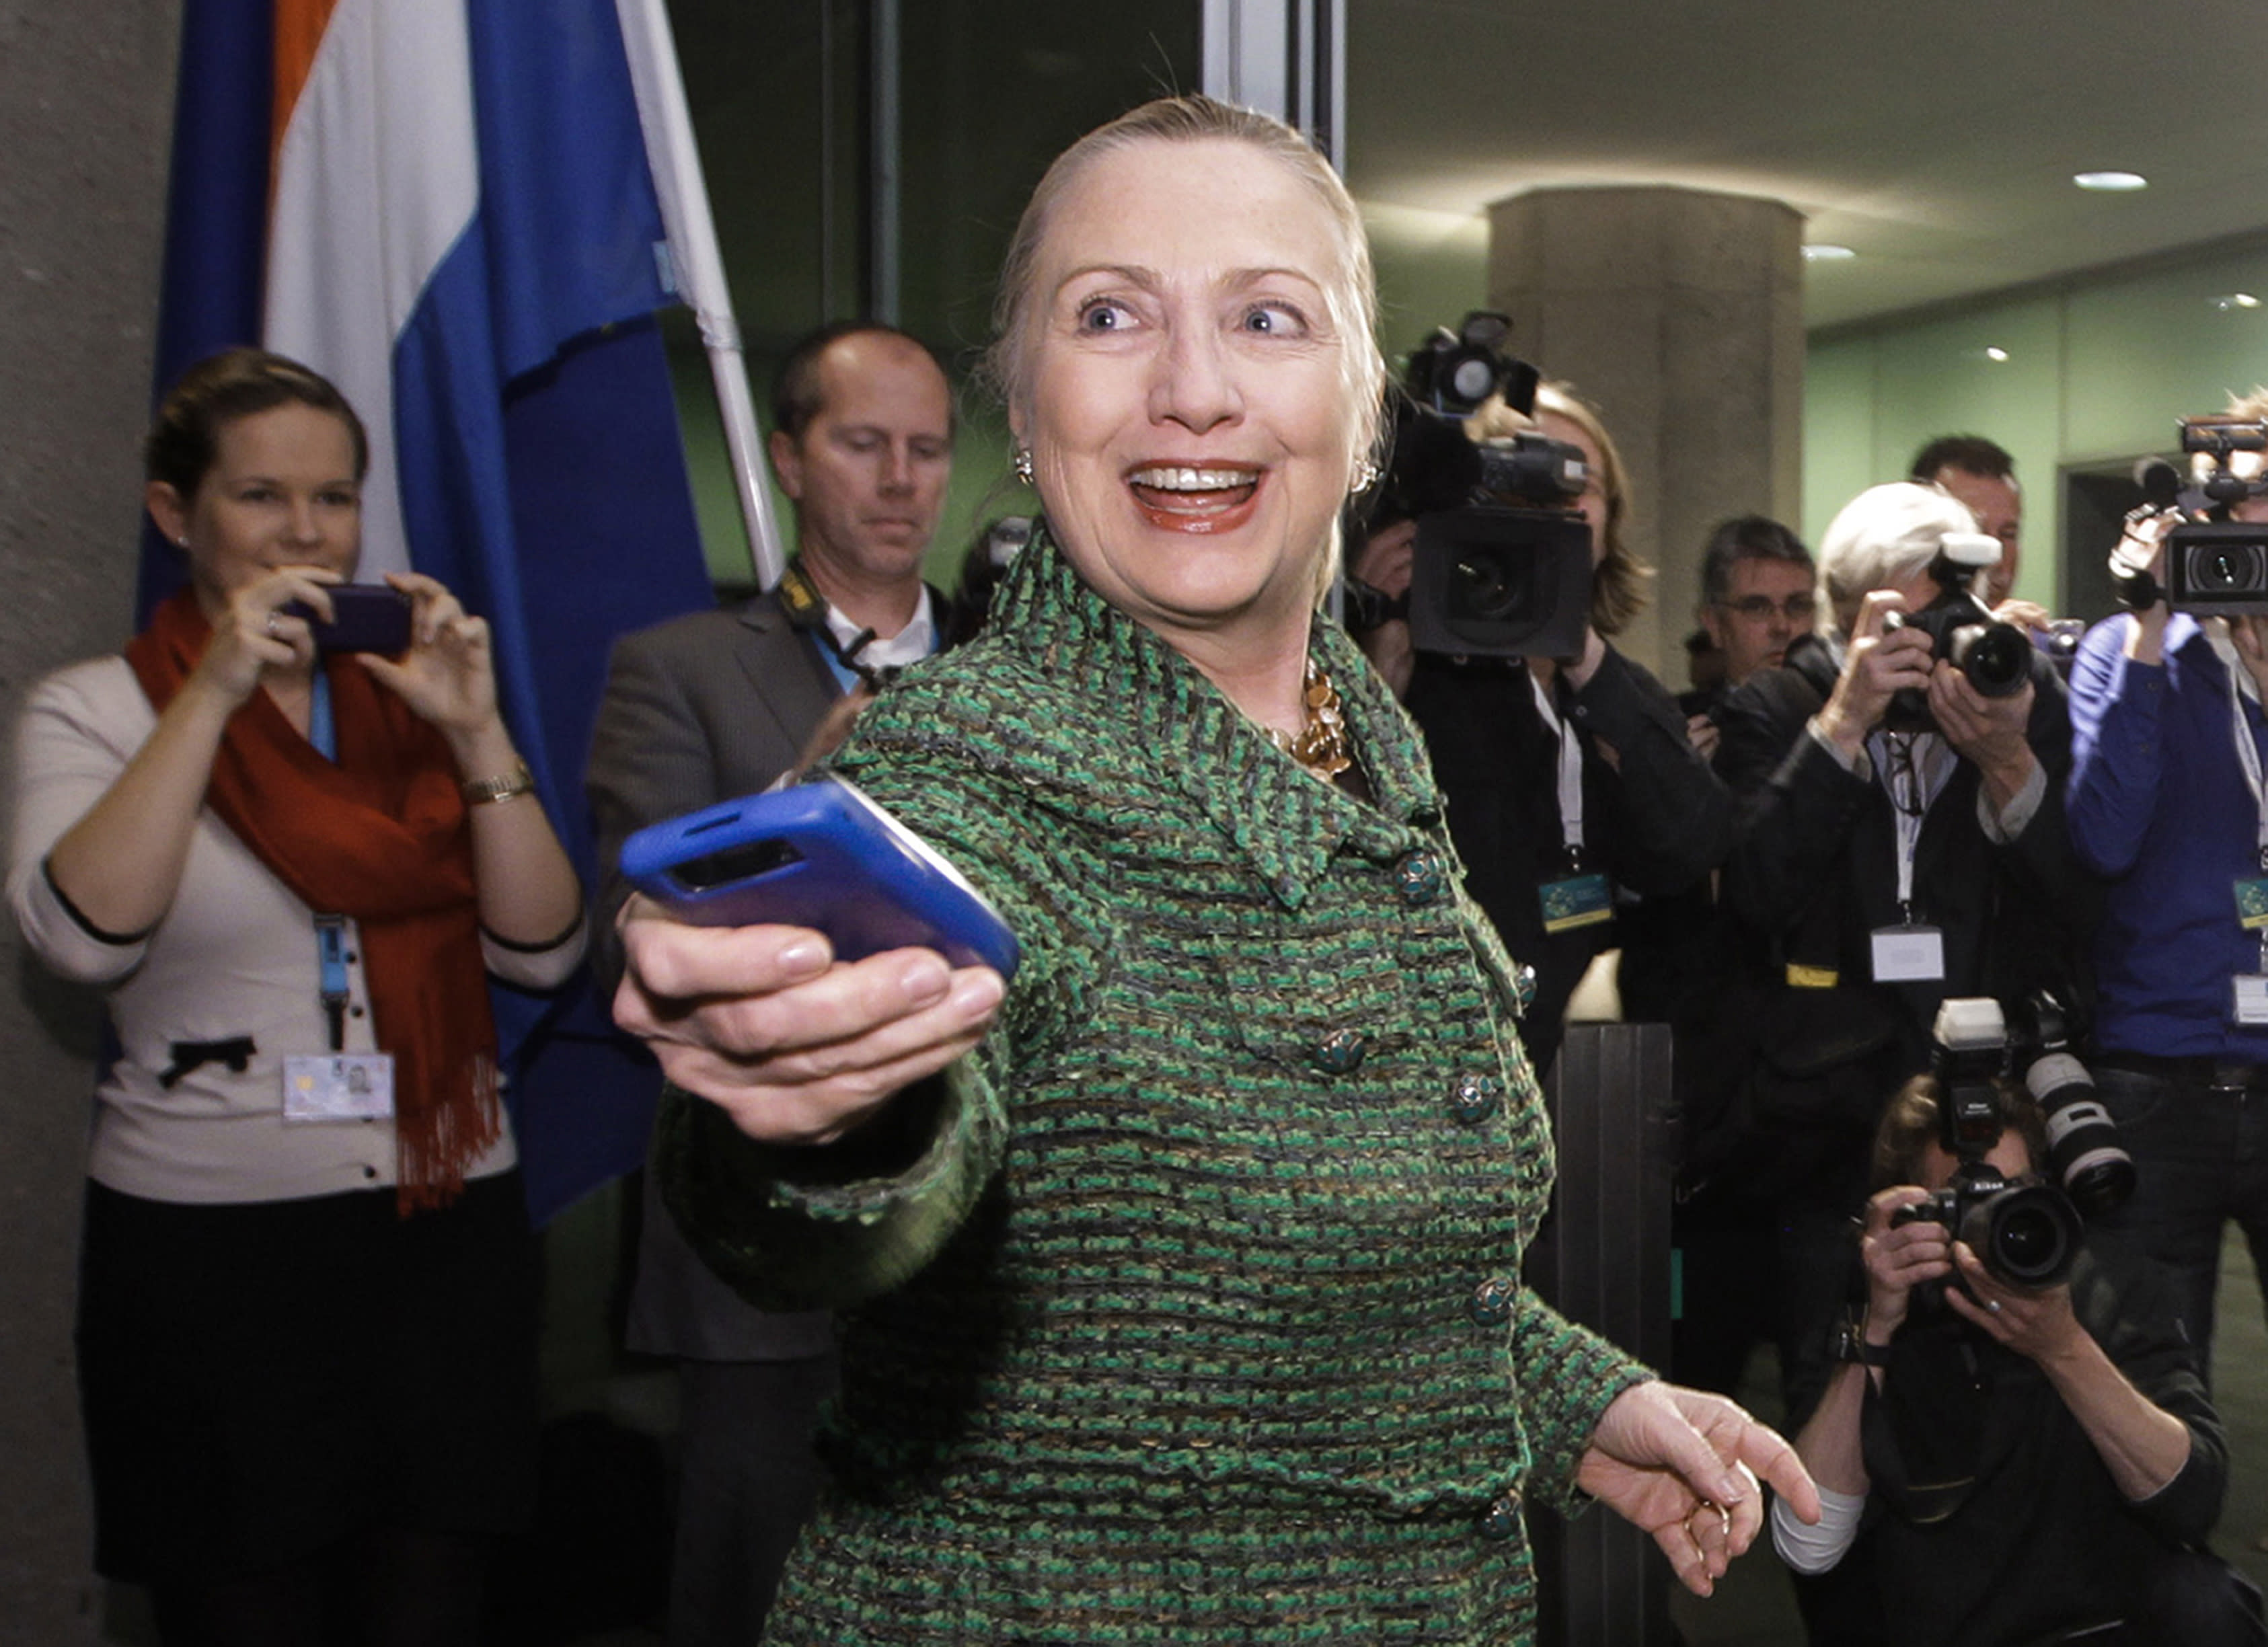 State Department found 4 emails about drones sent by Clinton